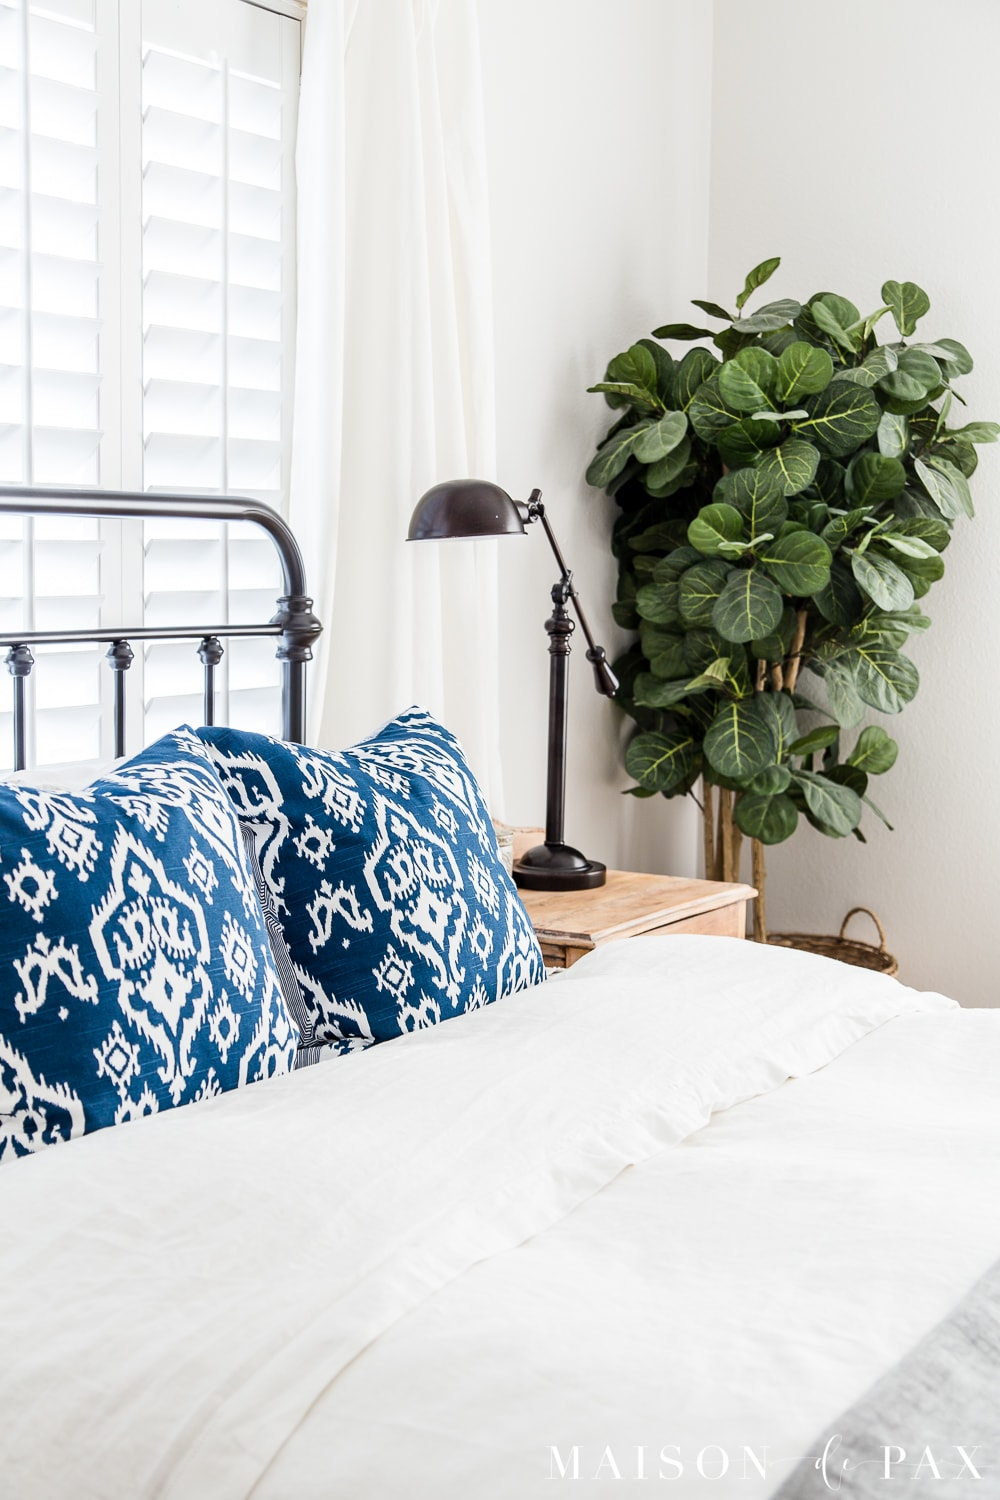 tip #3: create a focal point with greenery... Looking to add a seasonal touch to your bedroom?  Don't miss these incredibly simple master bedroom decorating ideas for spring! #springdecor #springbedroom #nightstand #modernfarmhouse